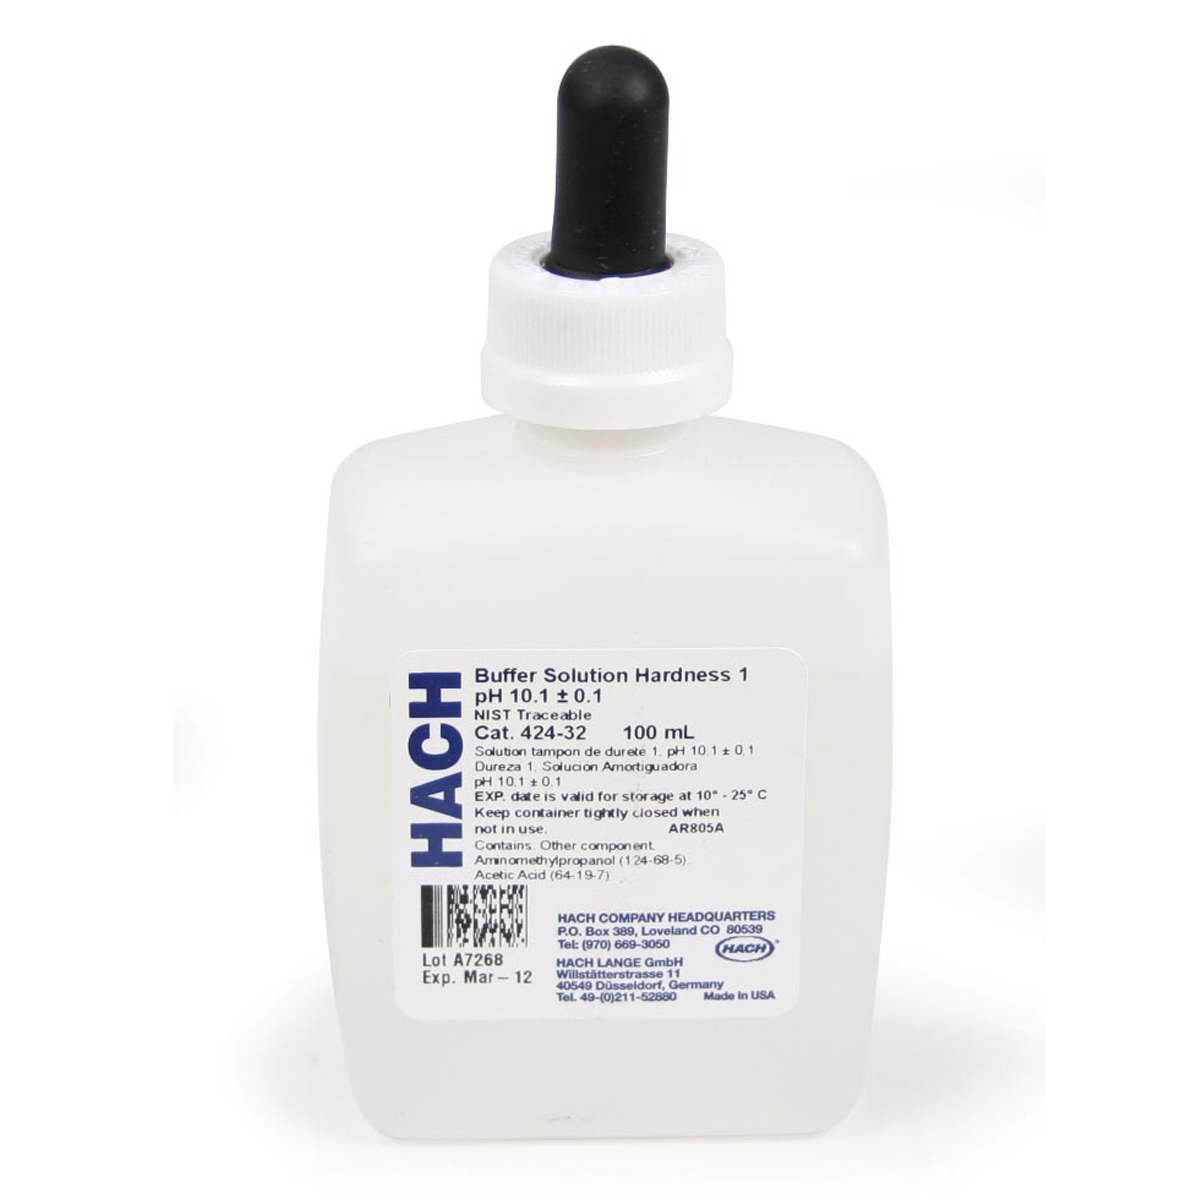 Hach Hardness 1 Buffer Solution 4 Oz